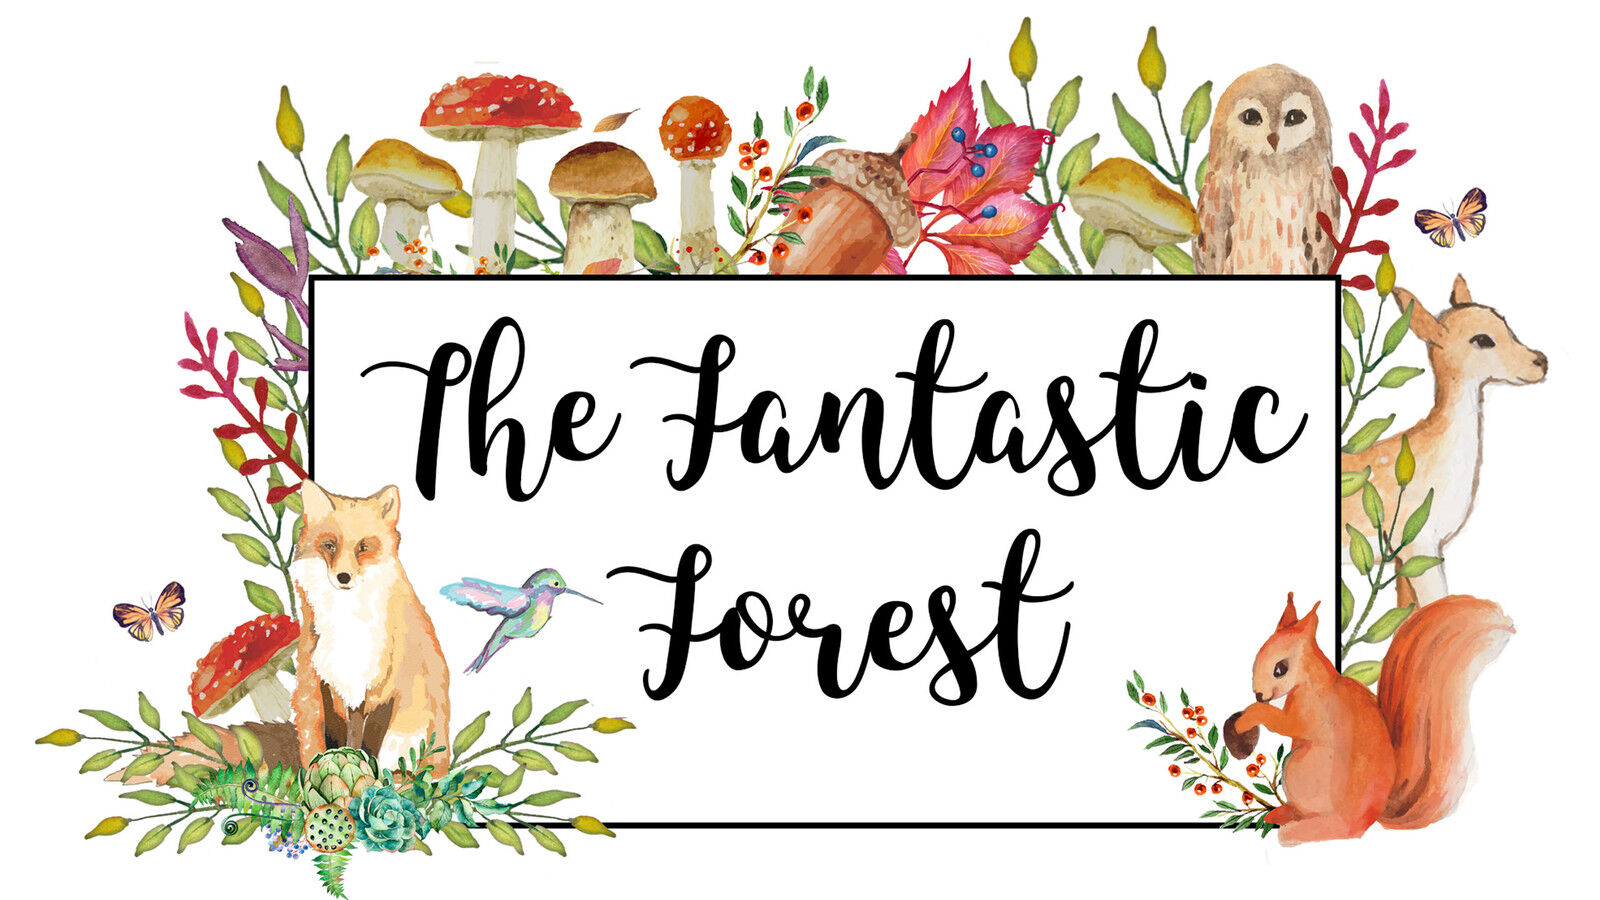 The Fantastic Forest